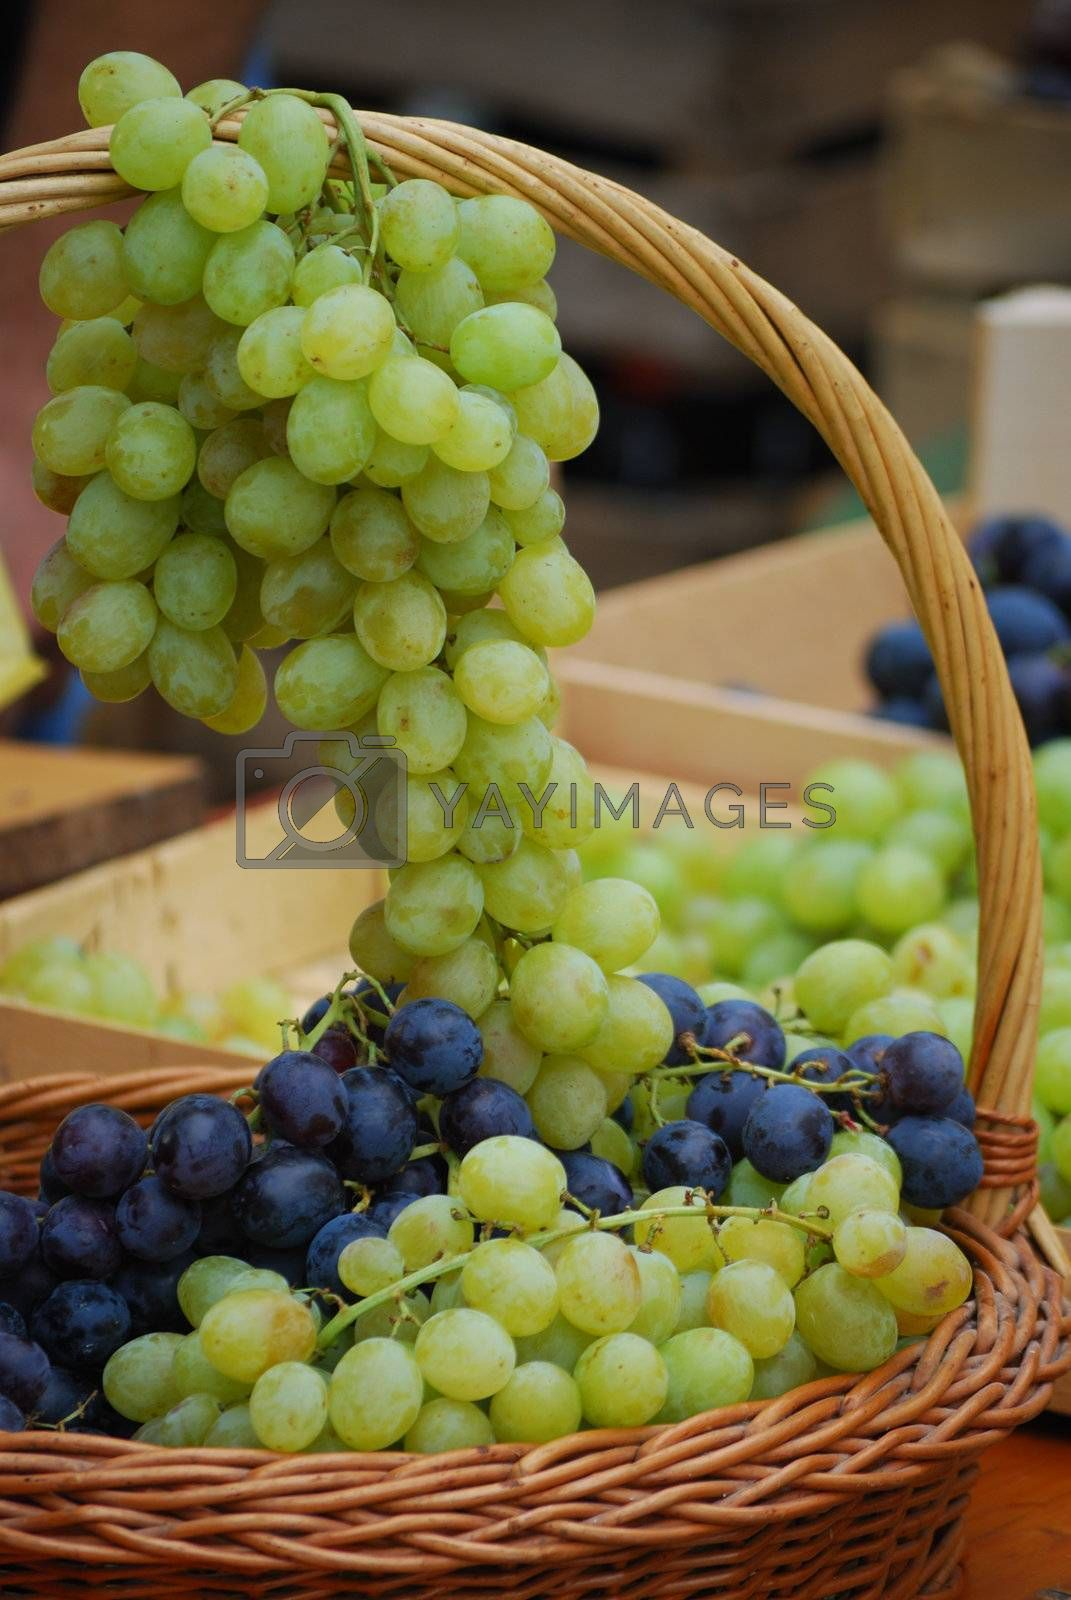 Royalty free image of Wine grapes in basket by zagart36